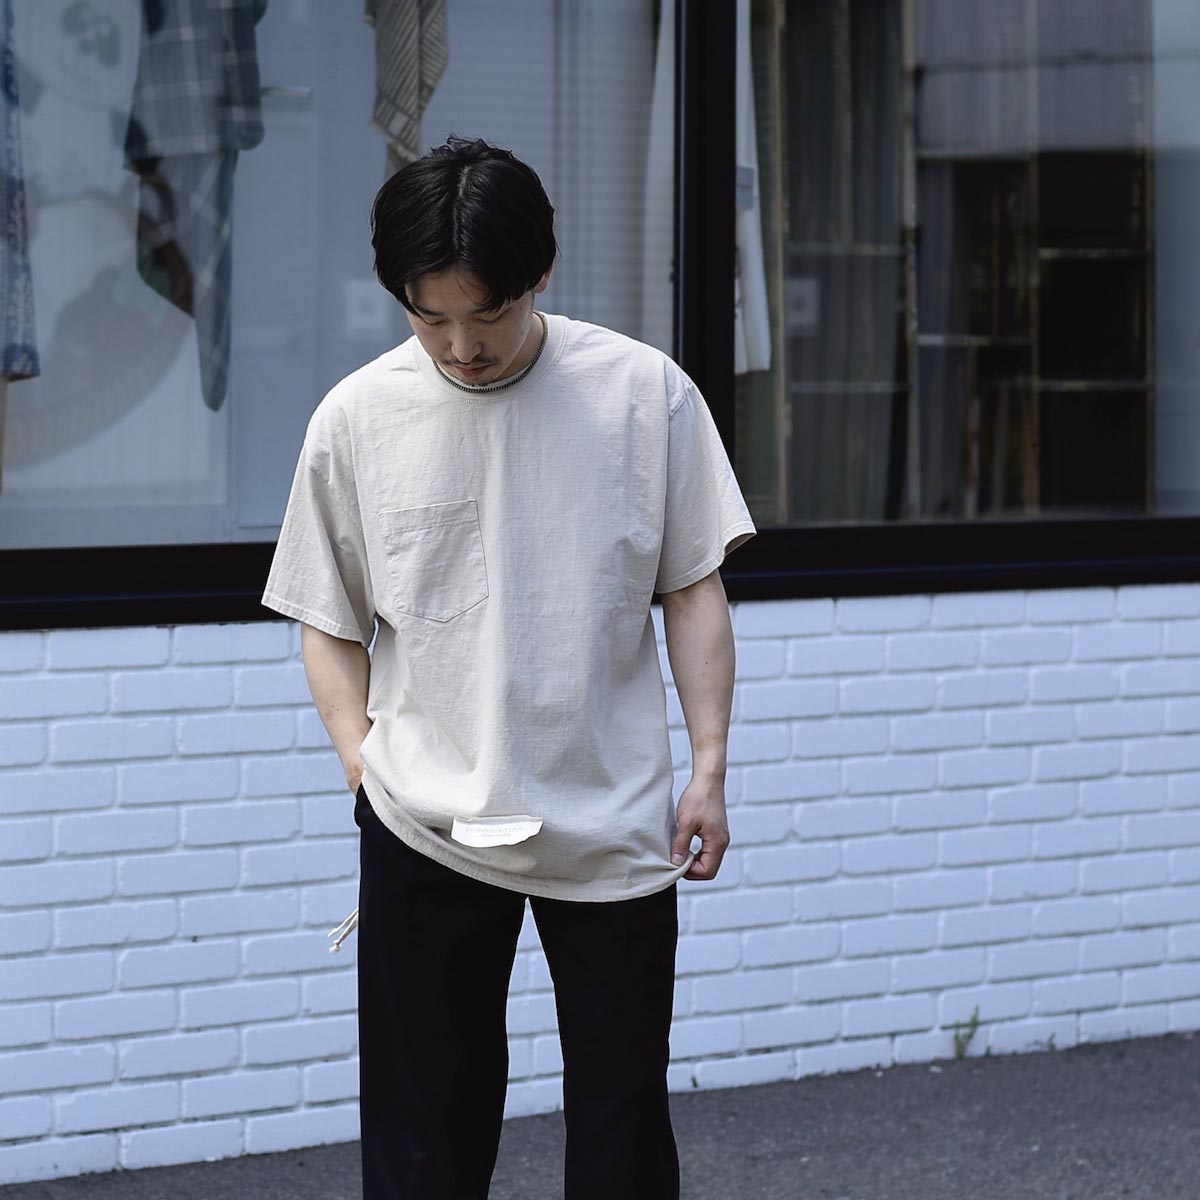 HESTRADA GEE-WIZ / SWITCH S/S Tee 着用イメージ Lsize